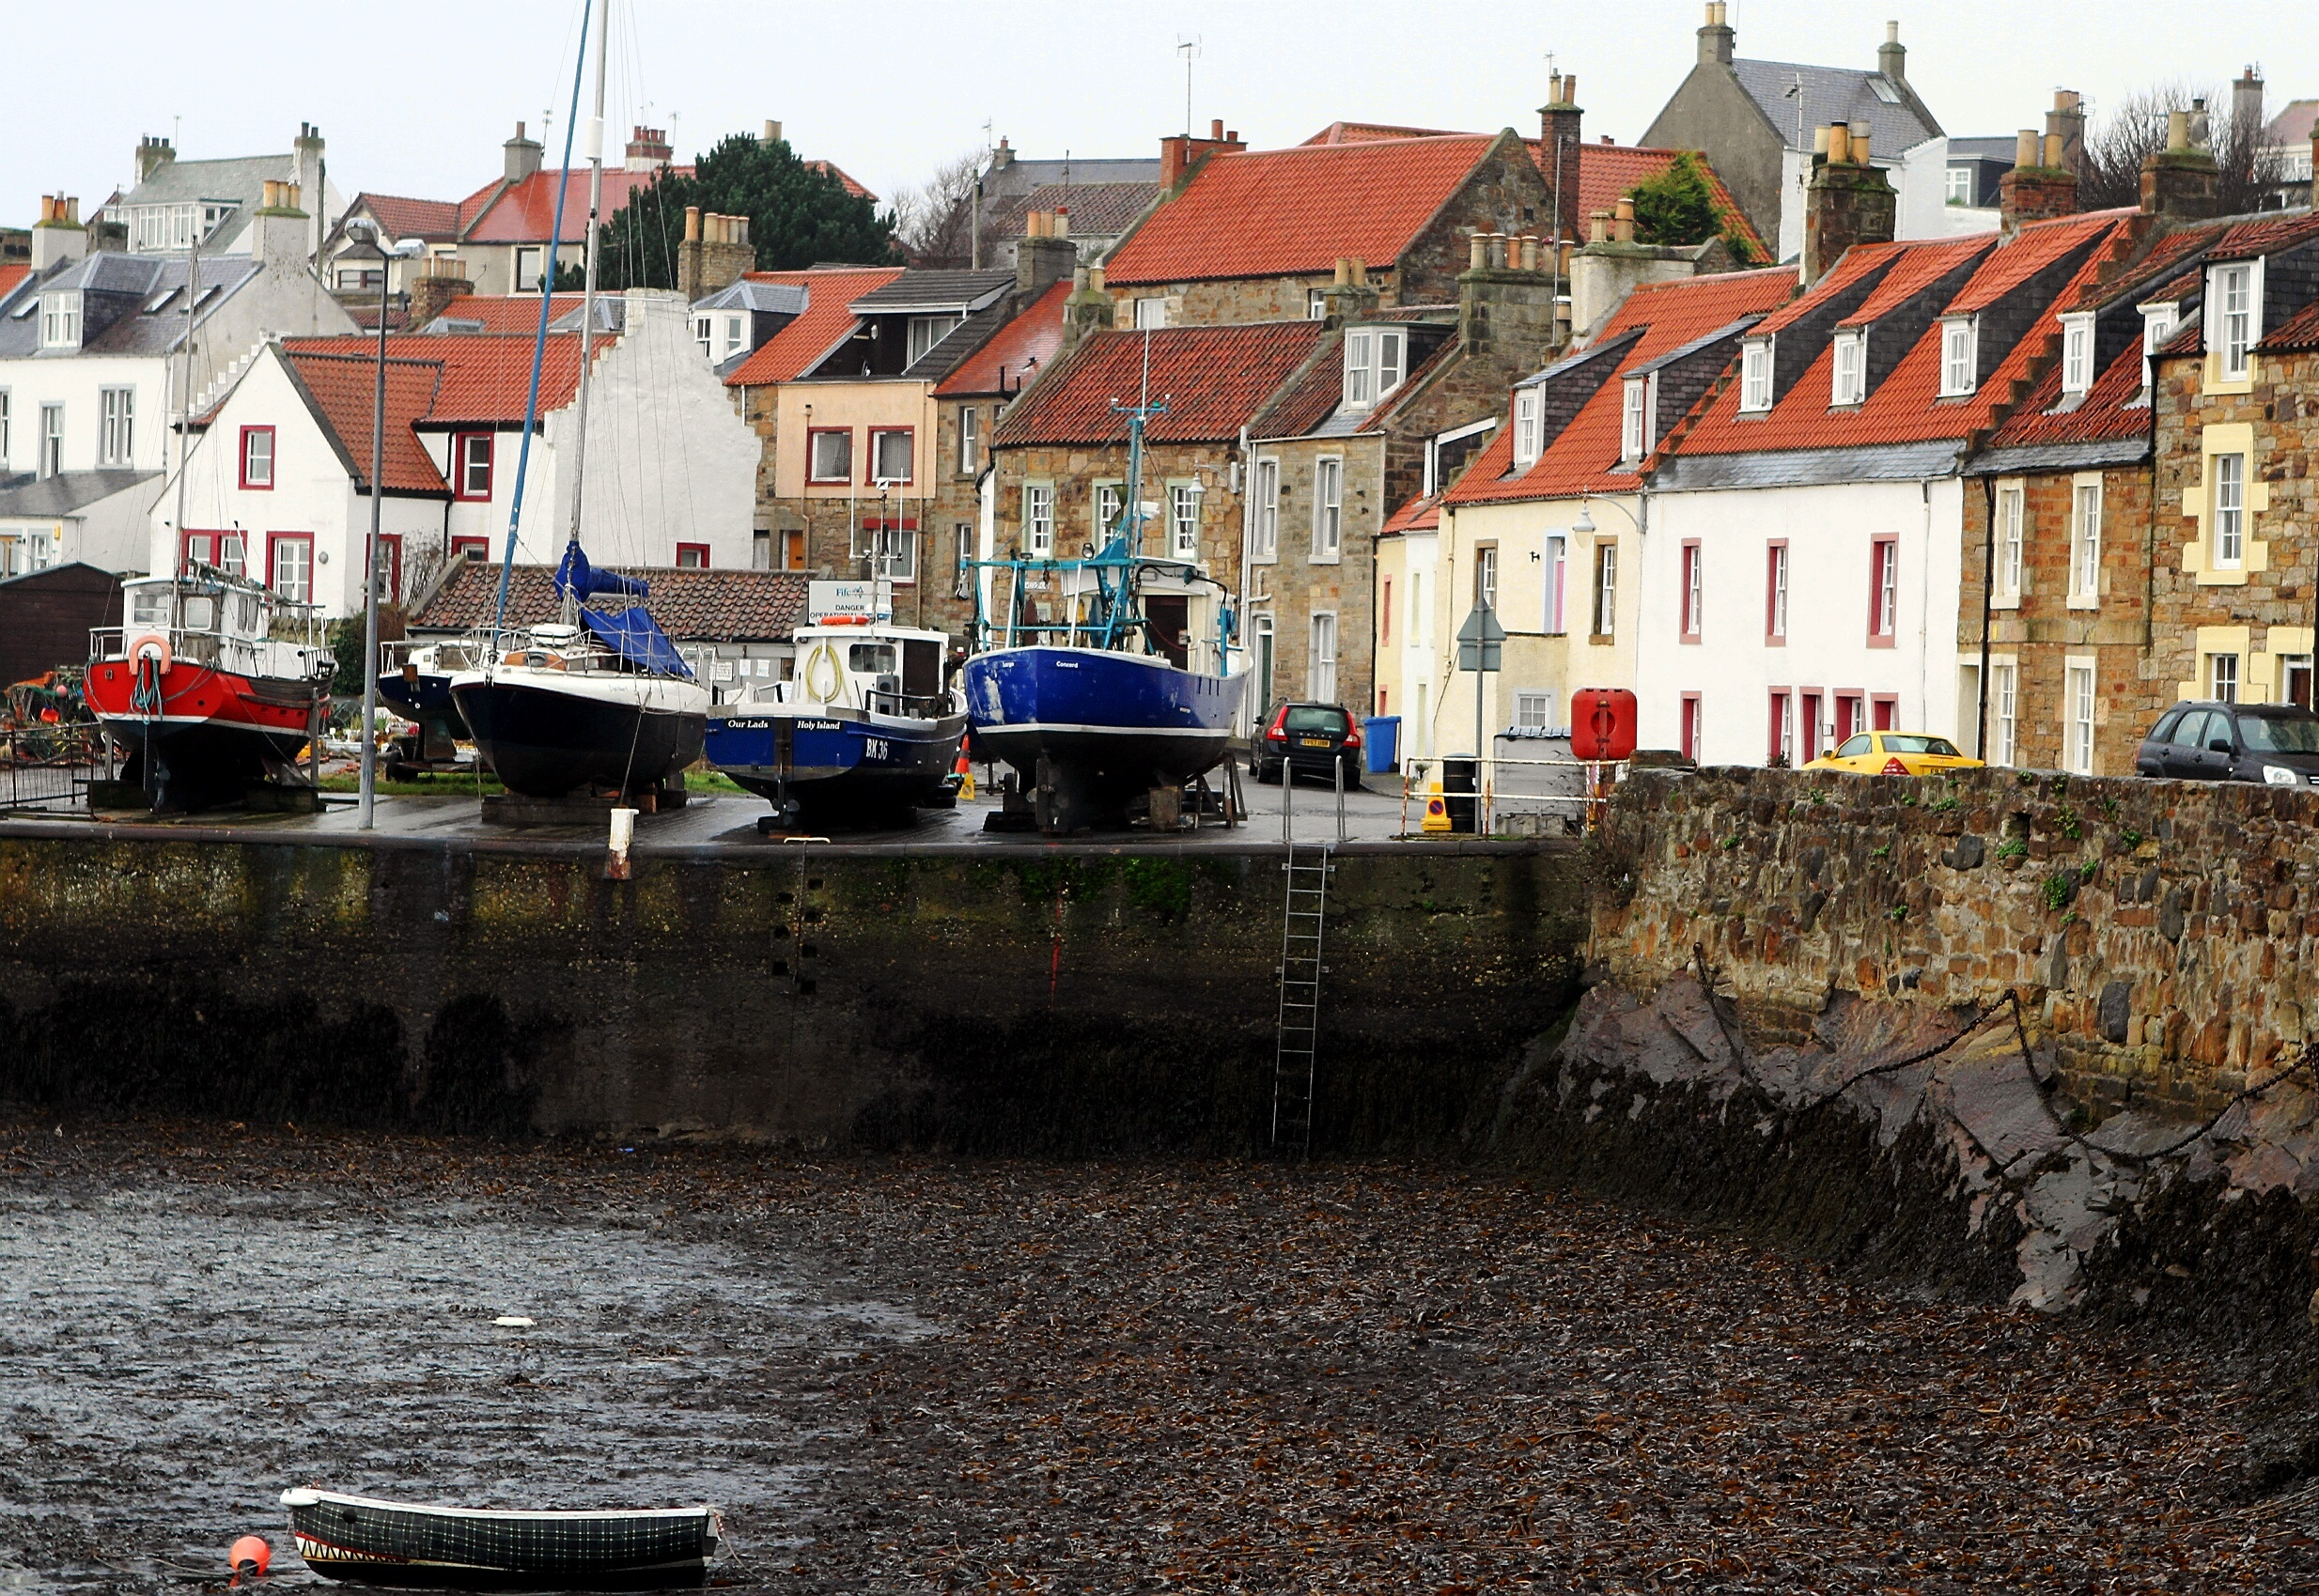 St Monans Harbour is ripe for the right kind of development, according to Richard Wemyss.